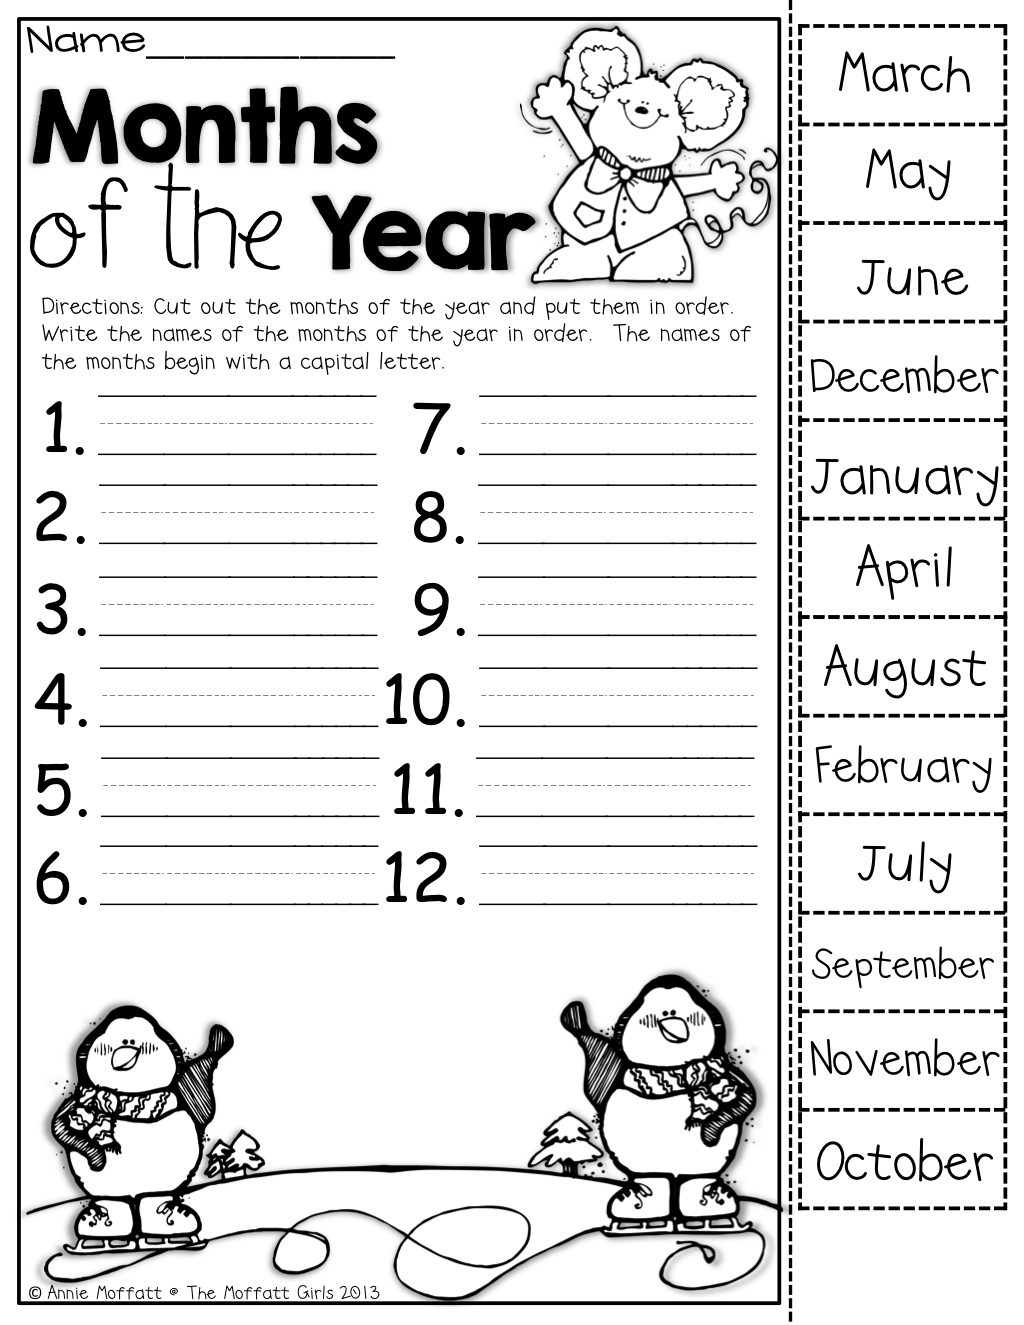 Printables Months Of The Year Worksheets 1000 images about months of the year on pinterest emergent readers classroom and zoo animals